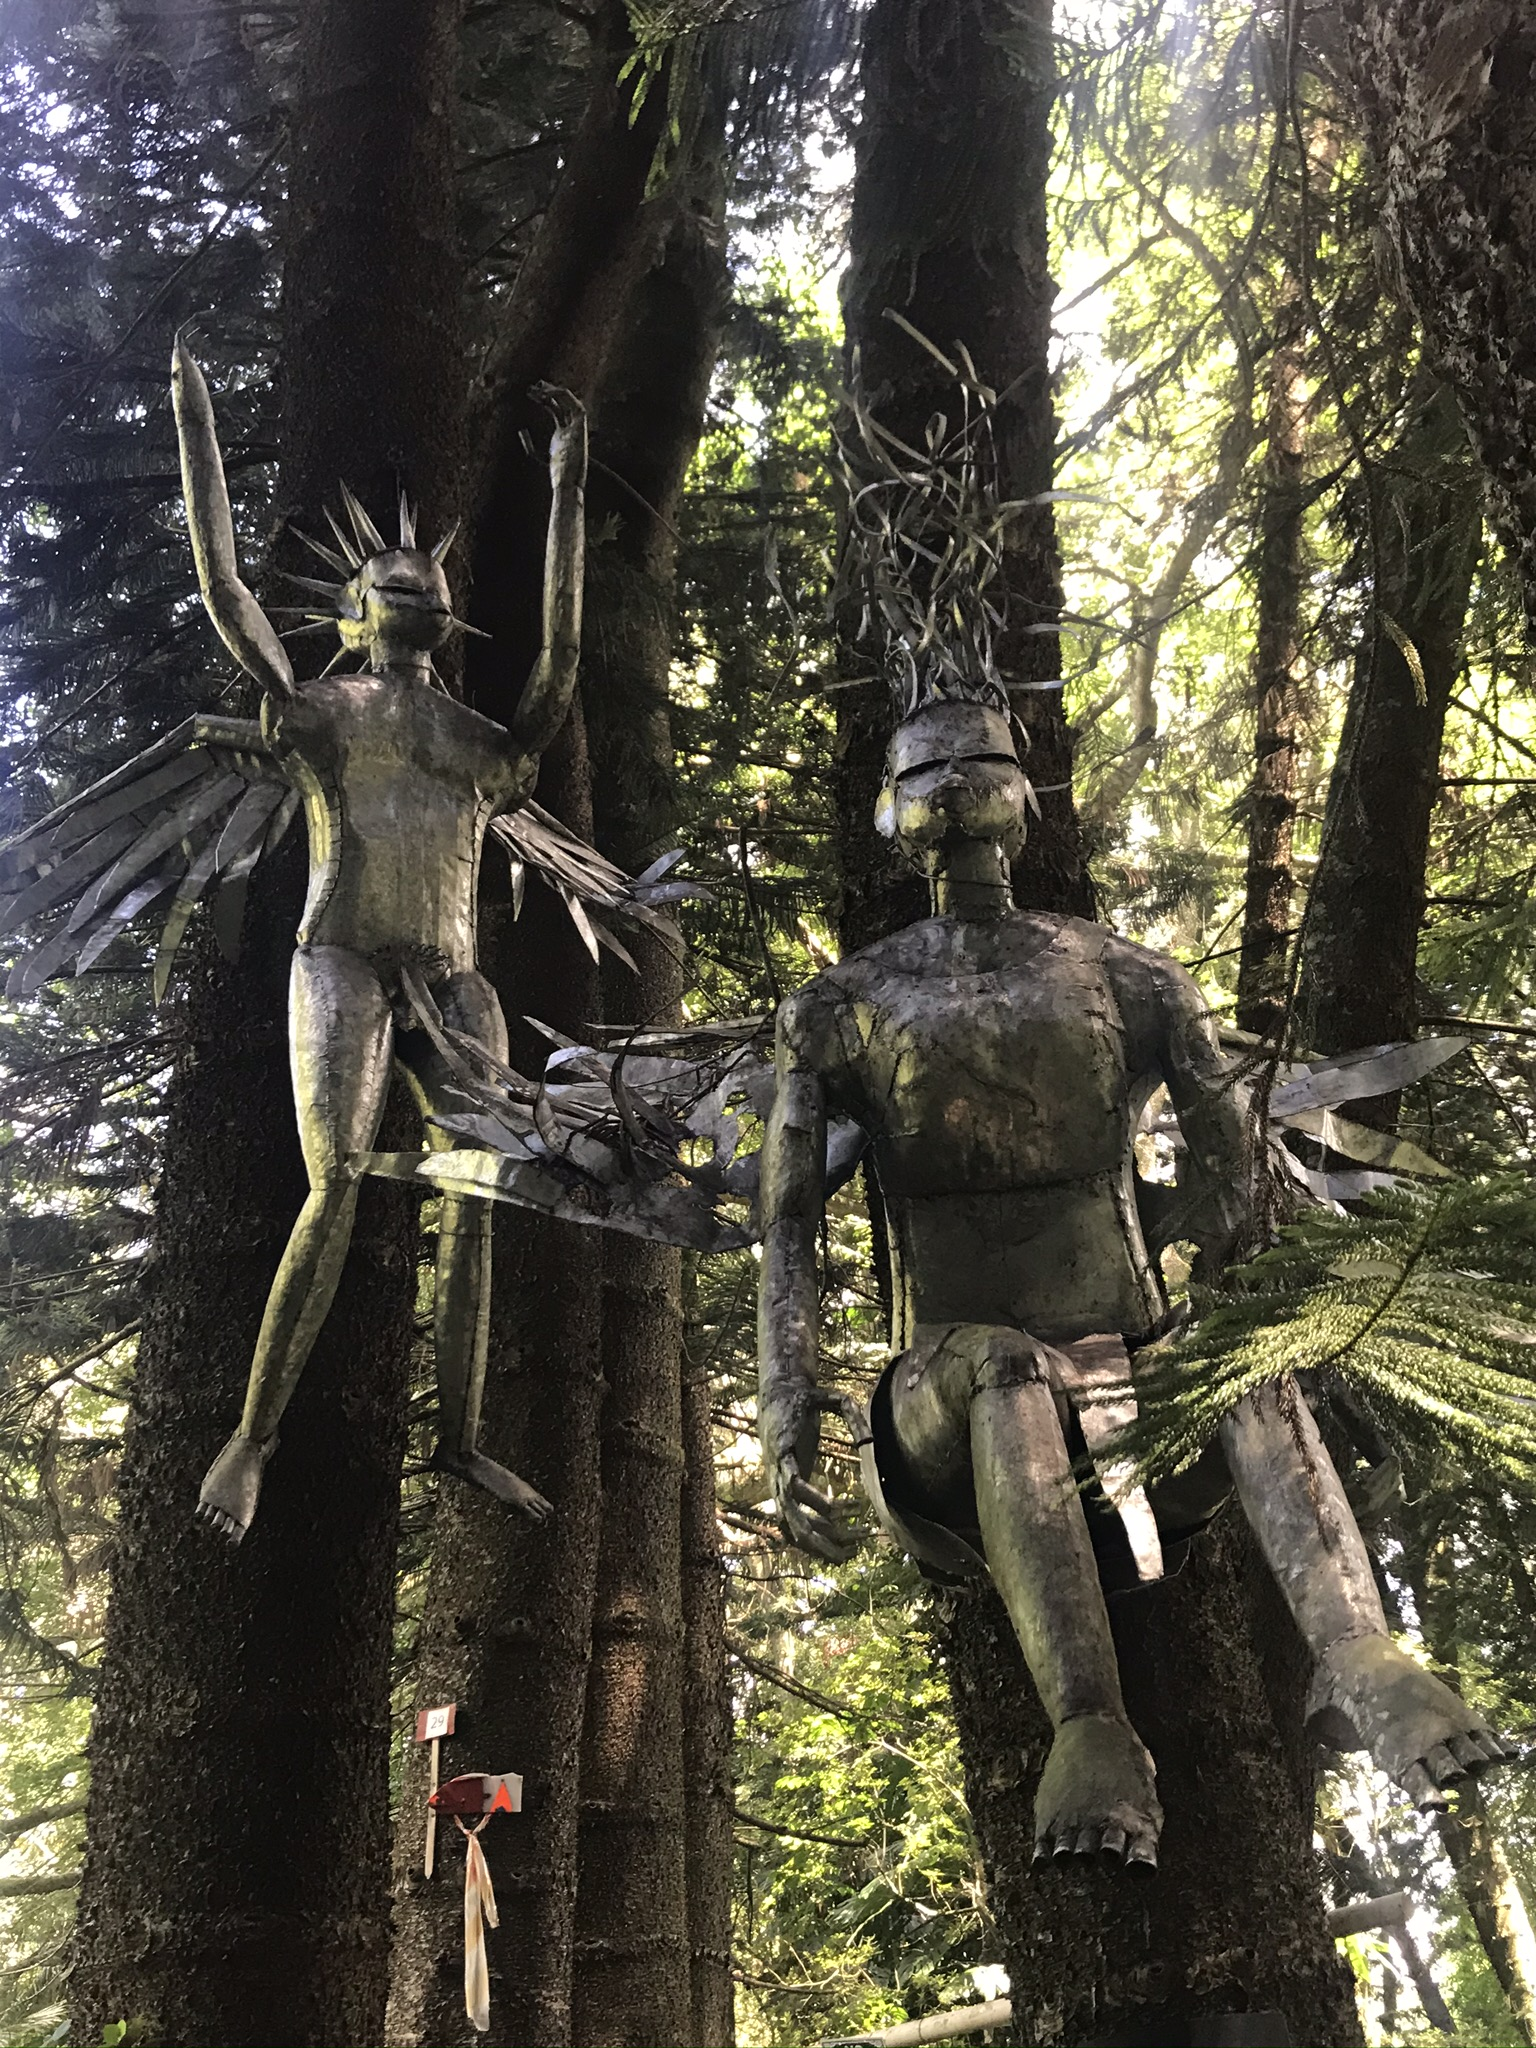 Metal angels fly in the trees at the Ammazulu Gardens and Sculpture Precinct